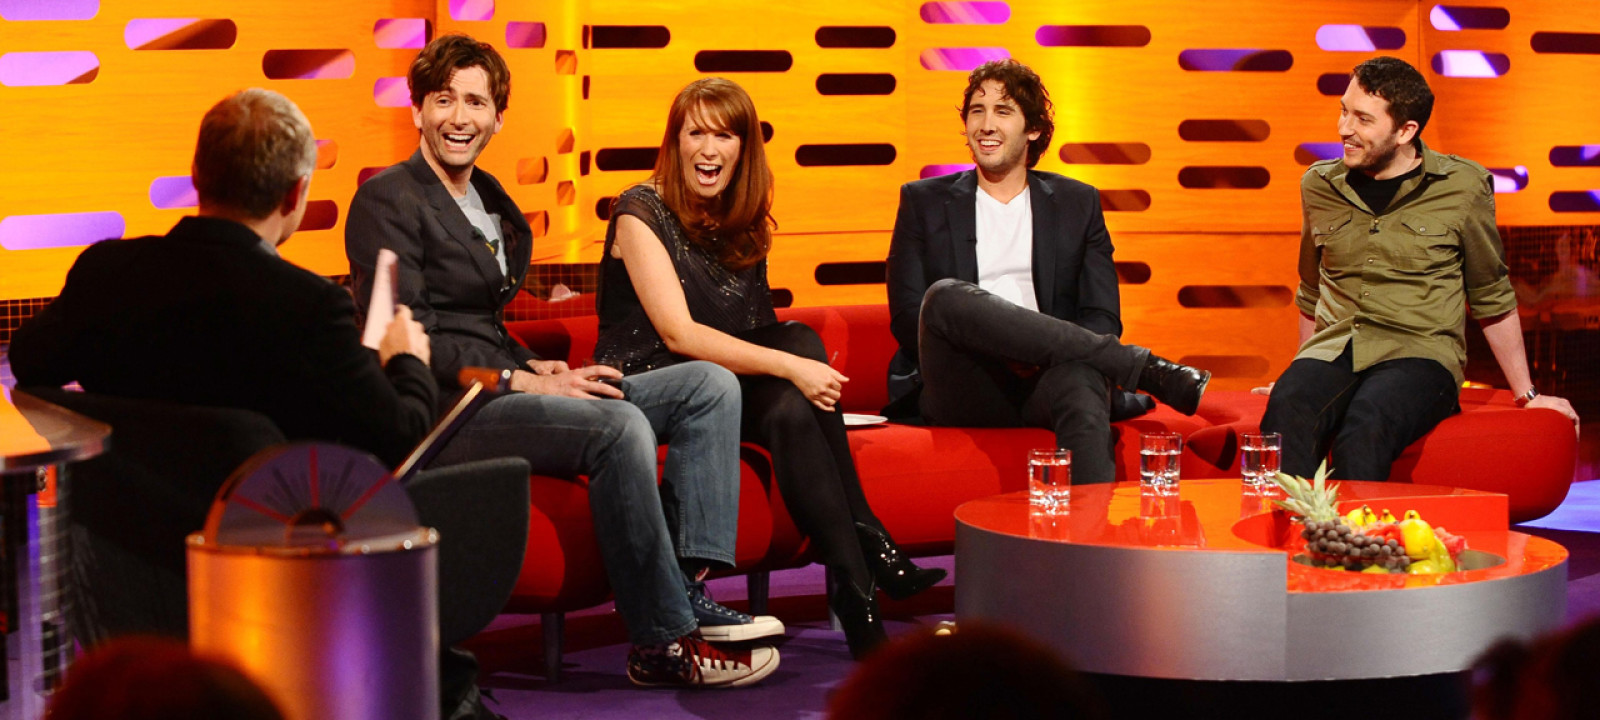 David Tennant, Catherine Tate, Josh Groban and Jon Richardson